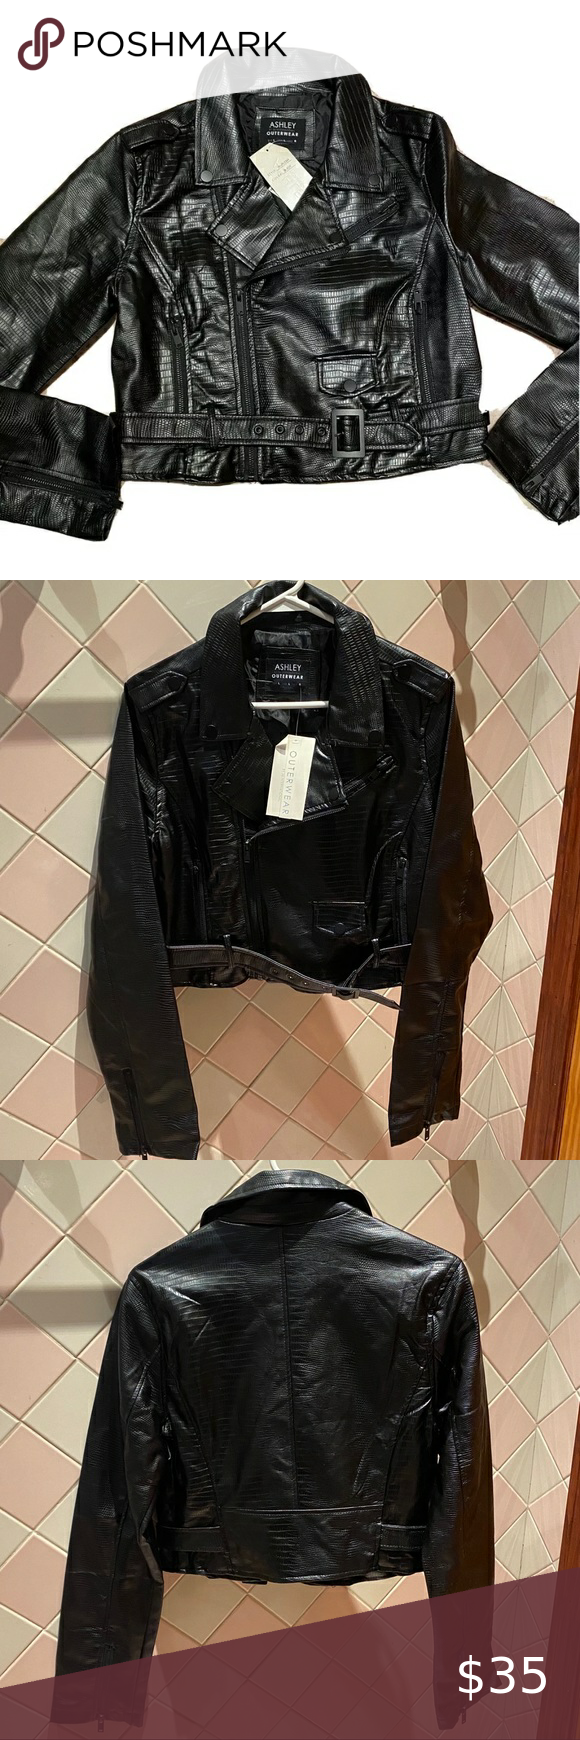 Ashley Outerwear Black Moto Leather Jacket Nwt Preowned Good Condition Bundle Save Or Ask For Black Leather Moto Jacket Leather Jacket Leather Moto Jacket [ 1740 x 580 Pixel ]